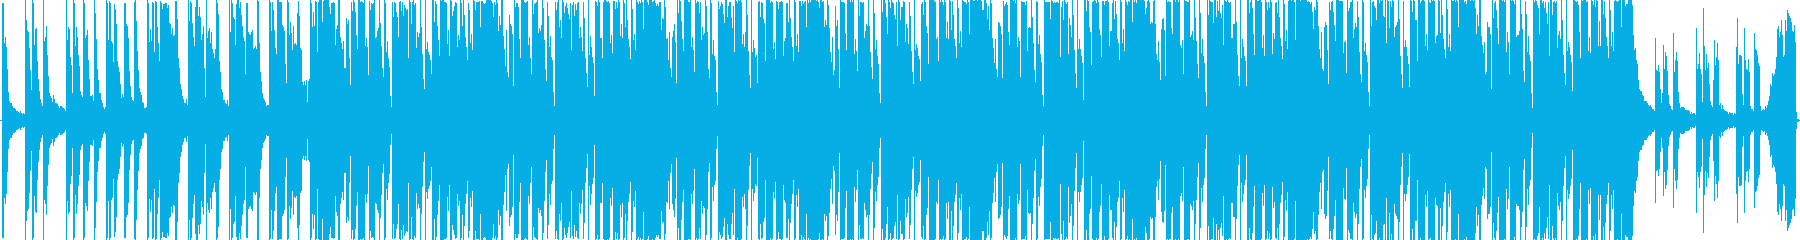 Fashionable, positive, electro, LL's reproduced waveform